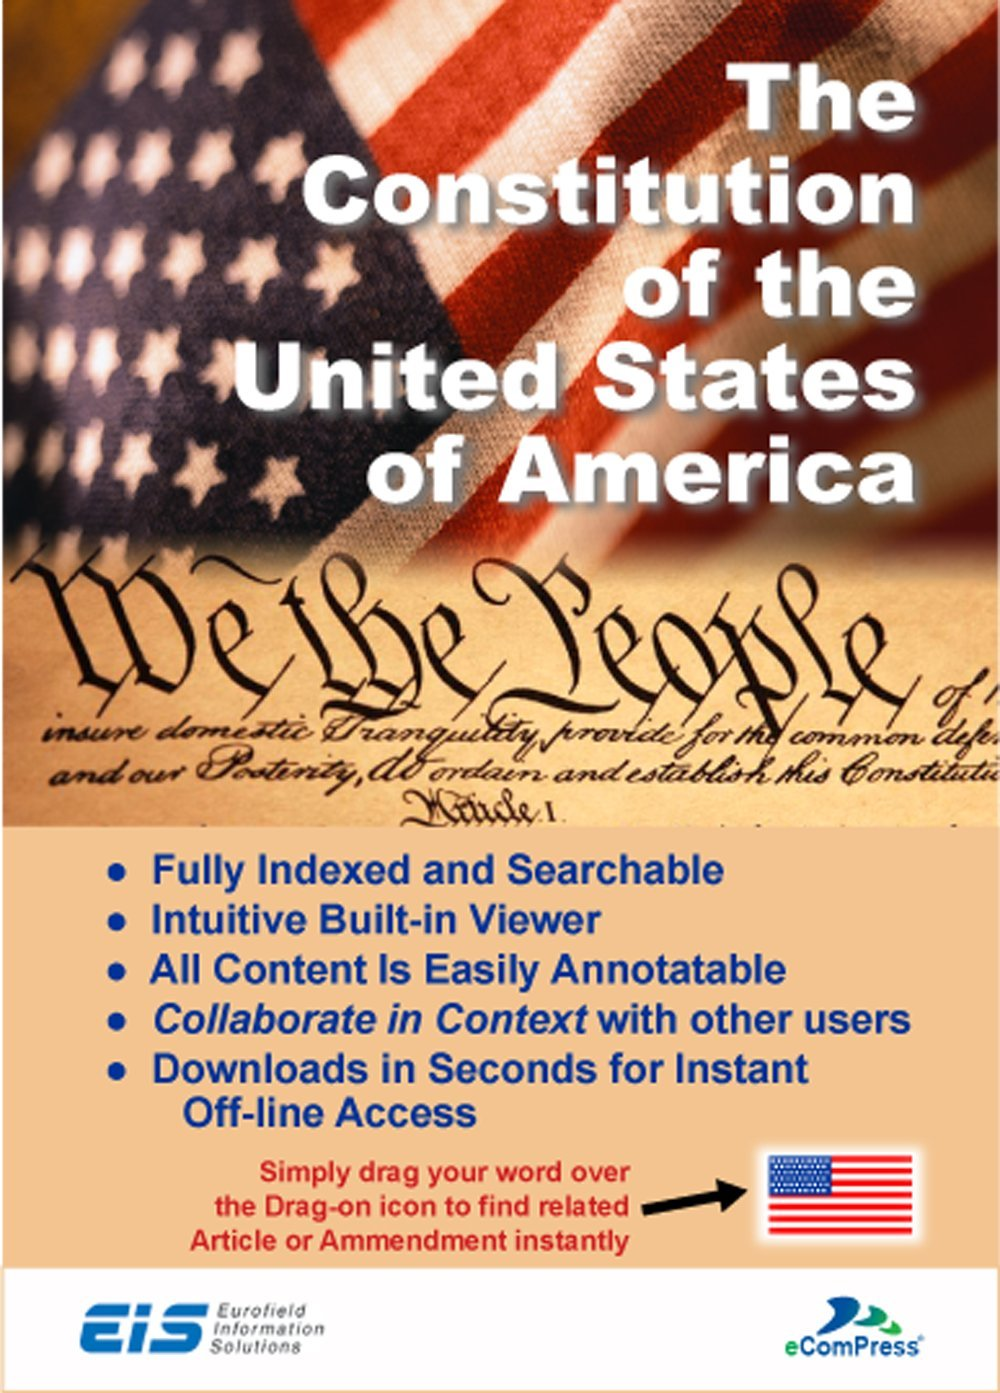 The Constitution of the United States of America - Secure Windows App (Download)